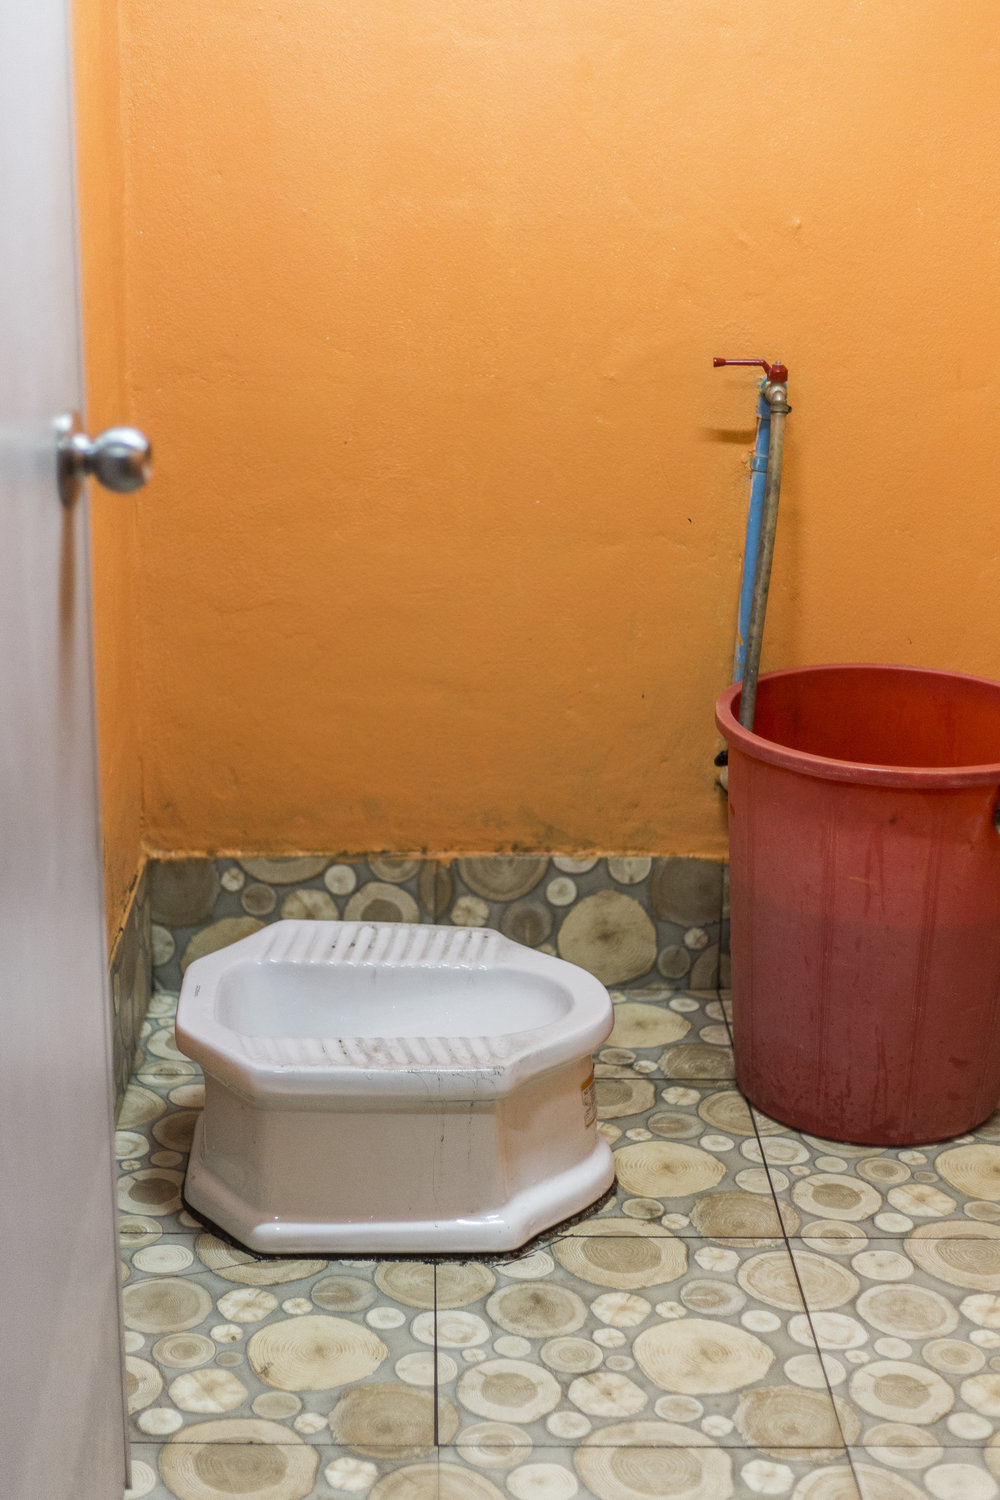 My first experience with a traditional Thai toilet...